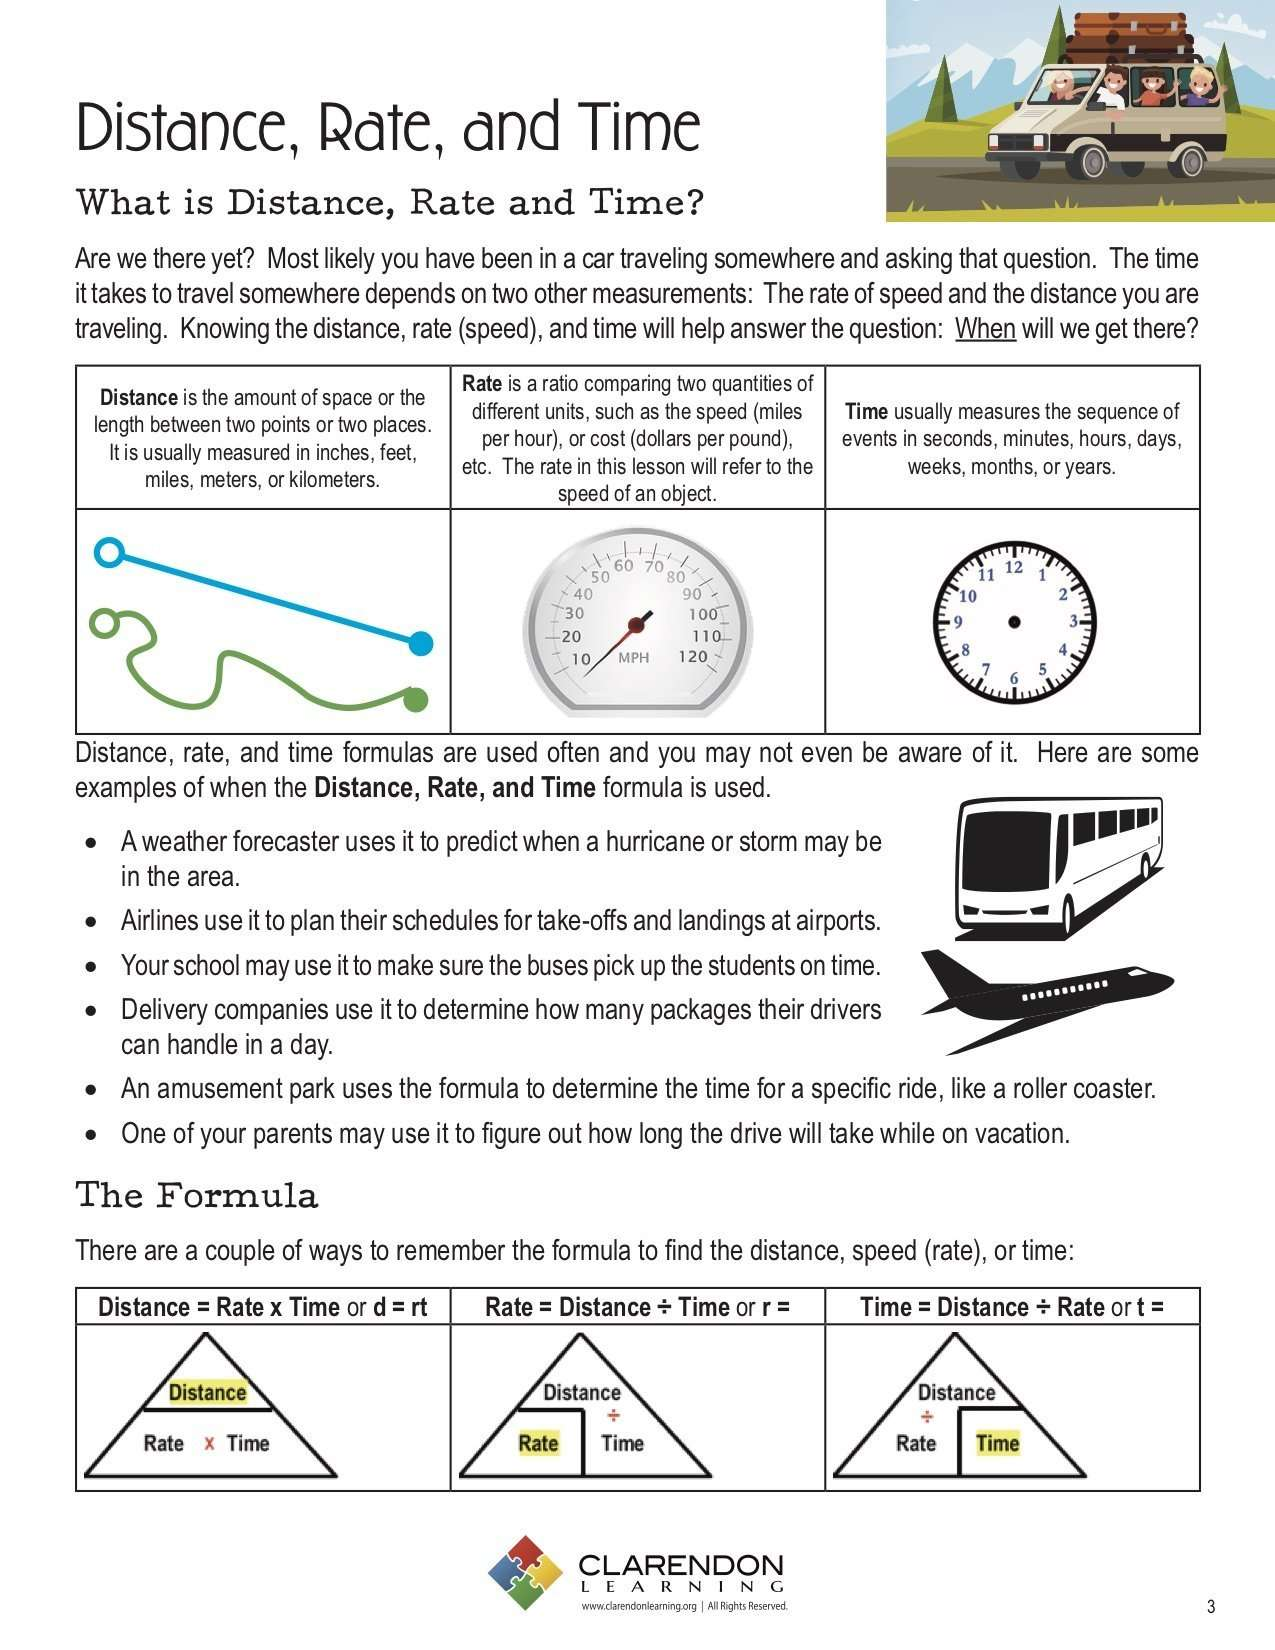 Distance, Rate, and Time Lesson Plan   Clarendon Learning